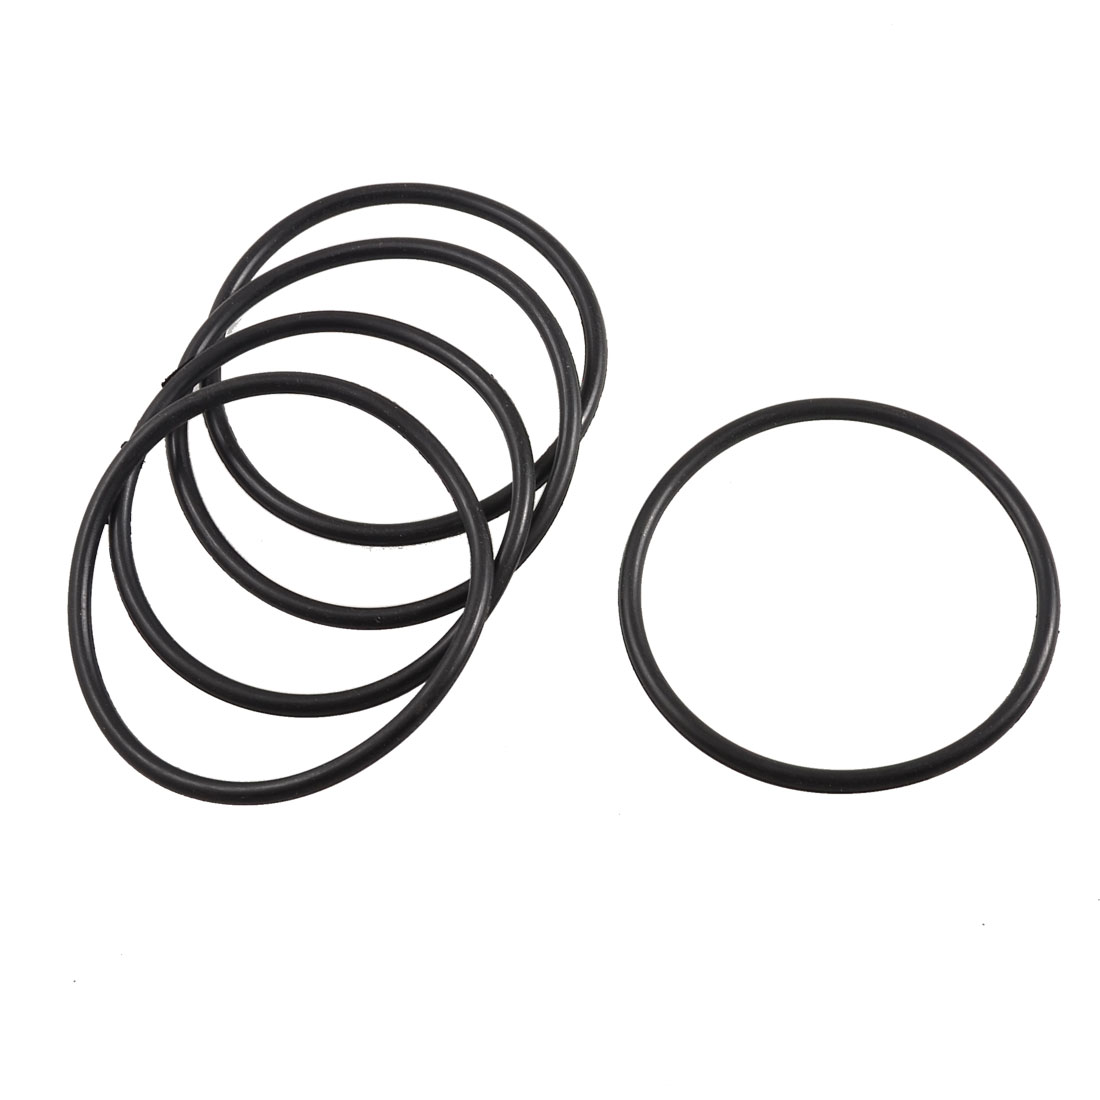 5 Pcs 70mm x 63mm x 3.5mm Flexible Black Rubber O Ring Oil Seal Gaskets